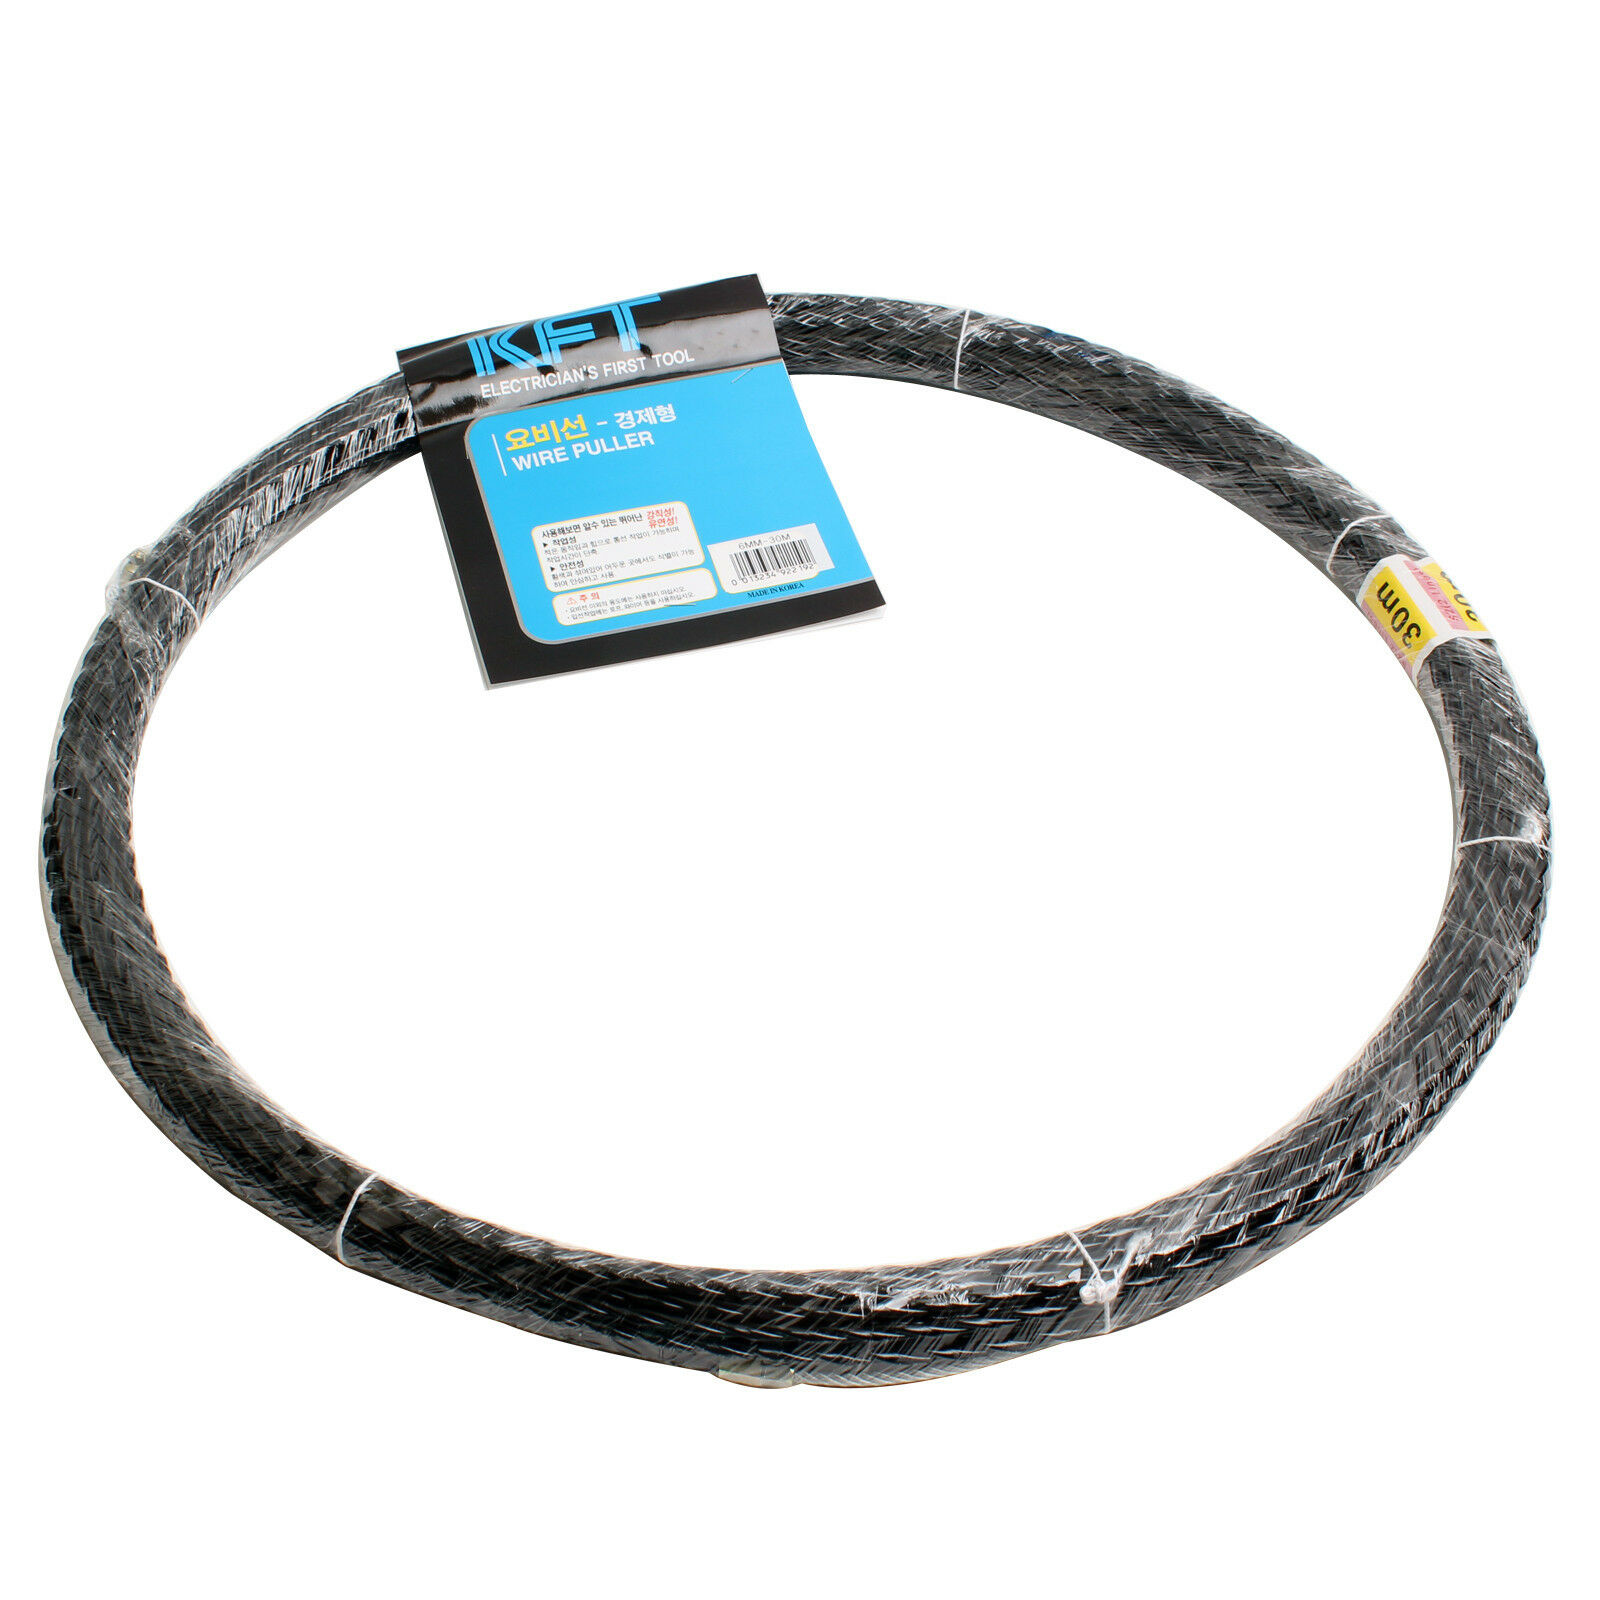 ELECTRICIANS FISH TAPE Wire Cable Puller 6mm 30M 98ft - $36.00 ...